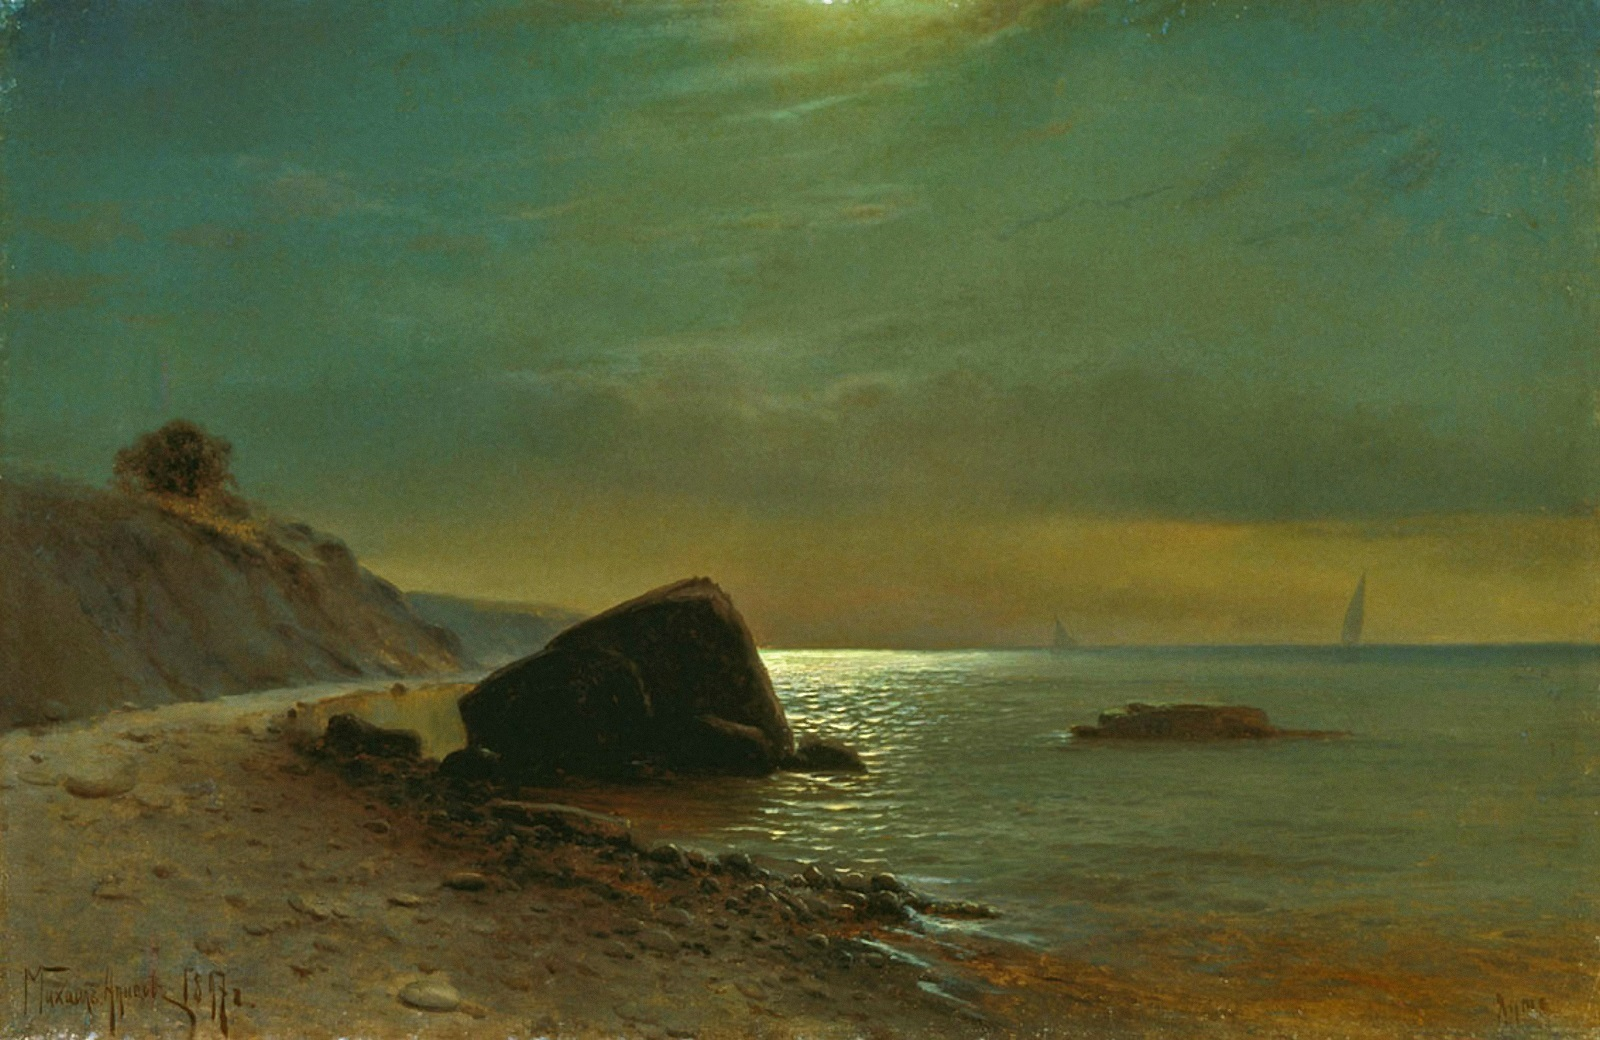 00 Mikhail Alisov. A Moonlit Night Over the Seashore. 1897